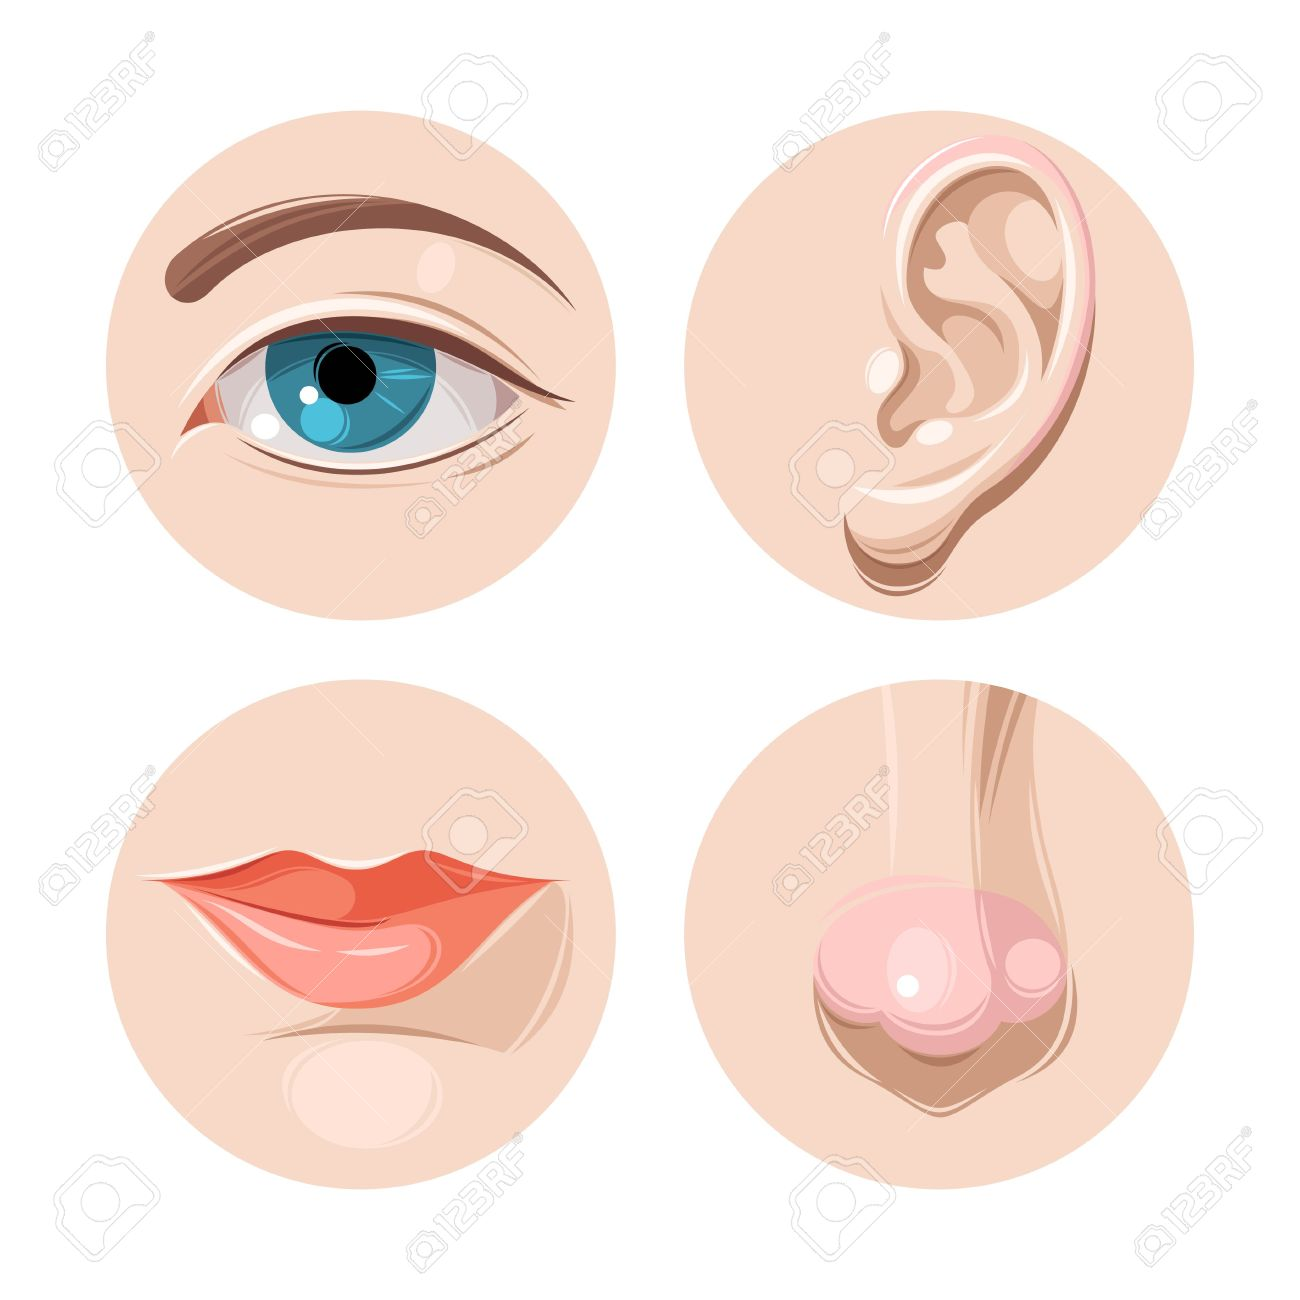 Vector illustration of human eye, ear, mouth and nose - 51612758